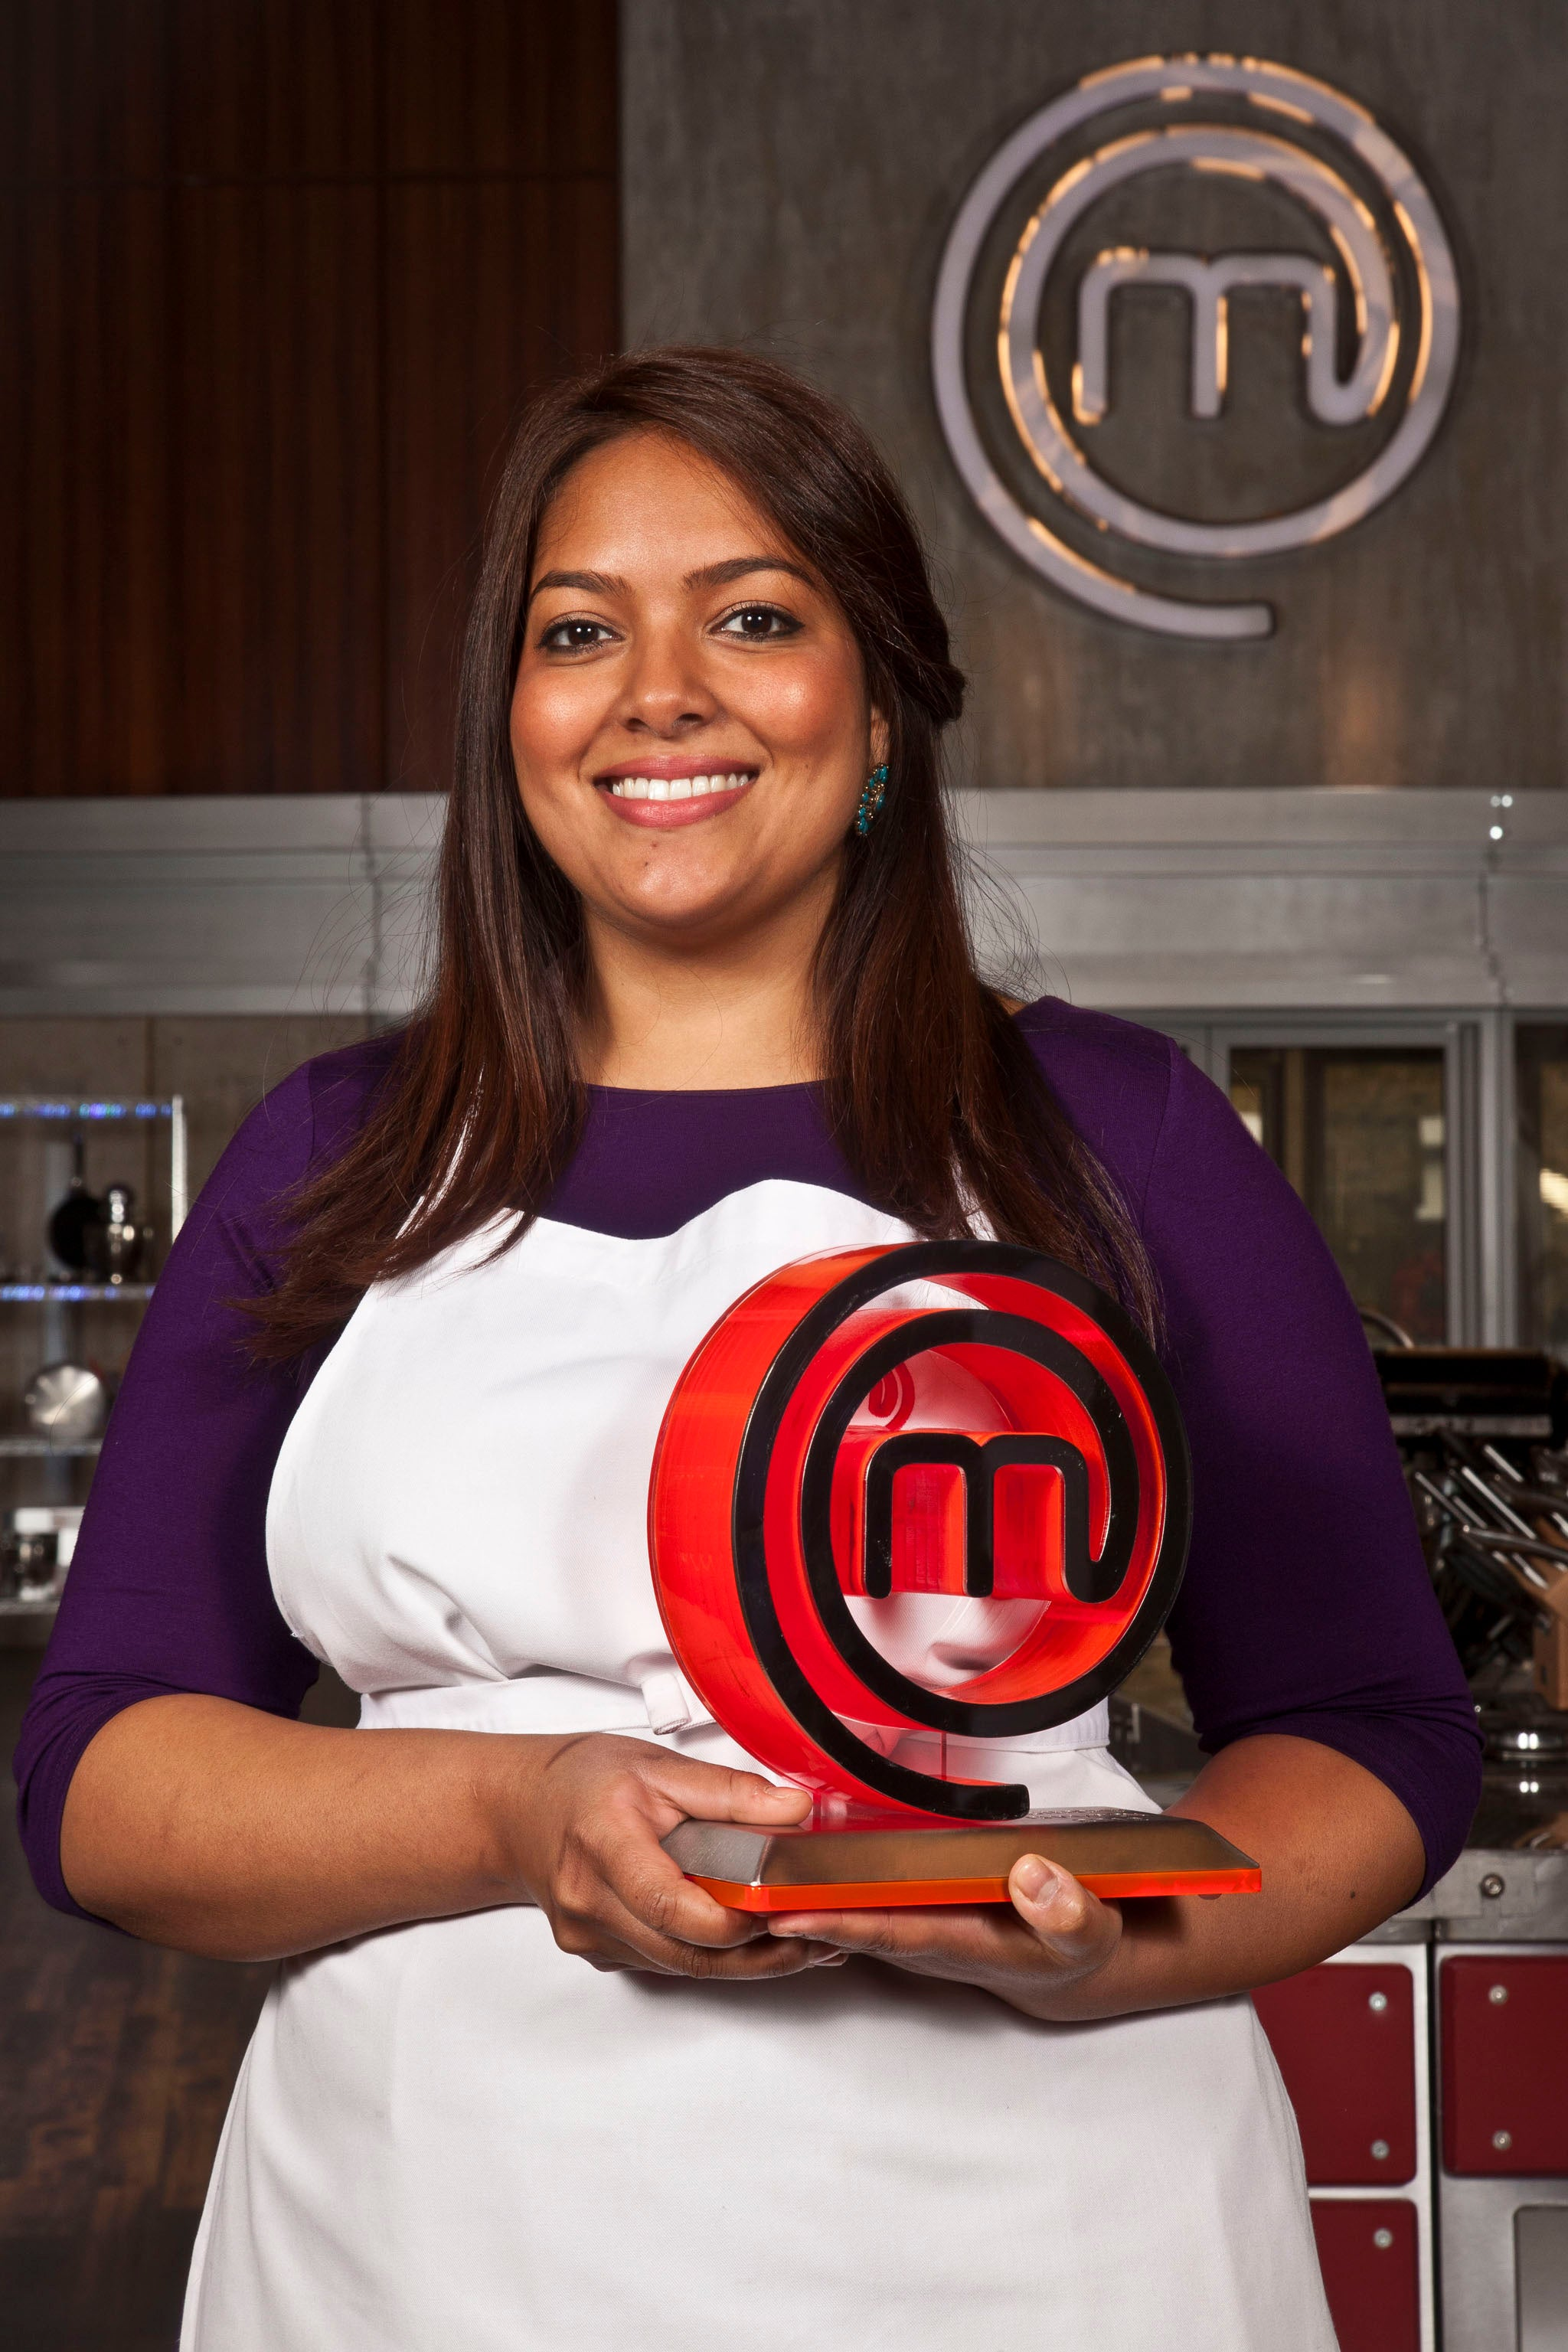 Female masterchef winners